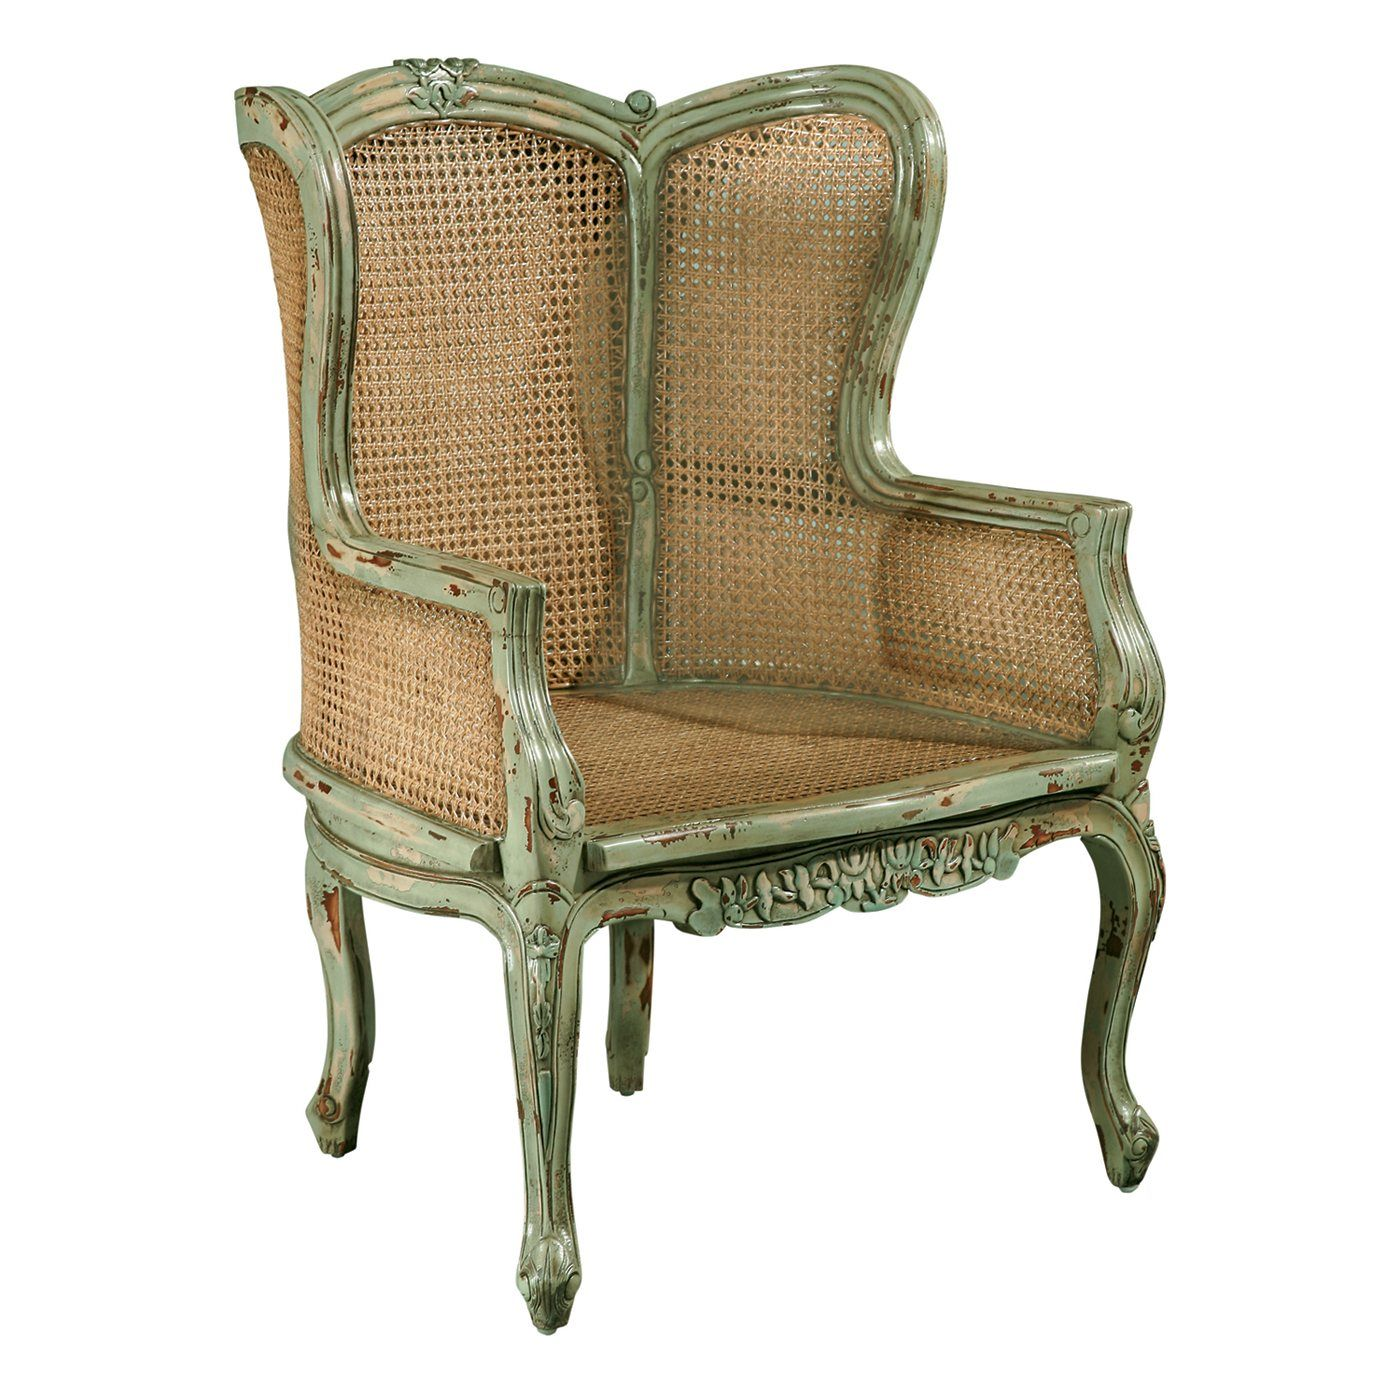 Furniture Classics Louis Xv Bergere Chair Atgstores